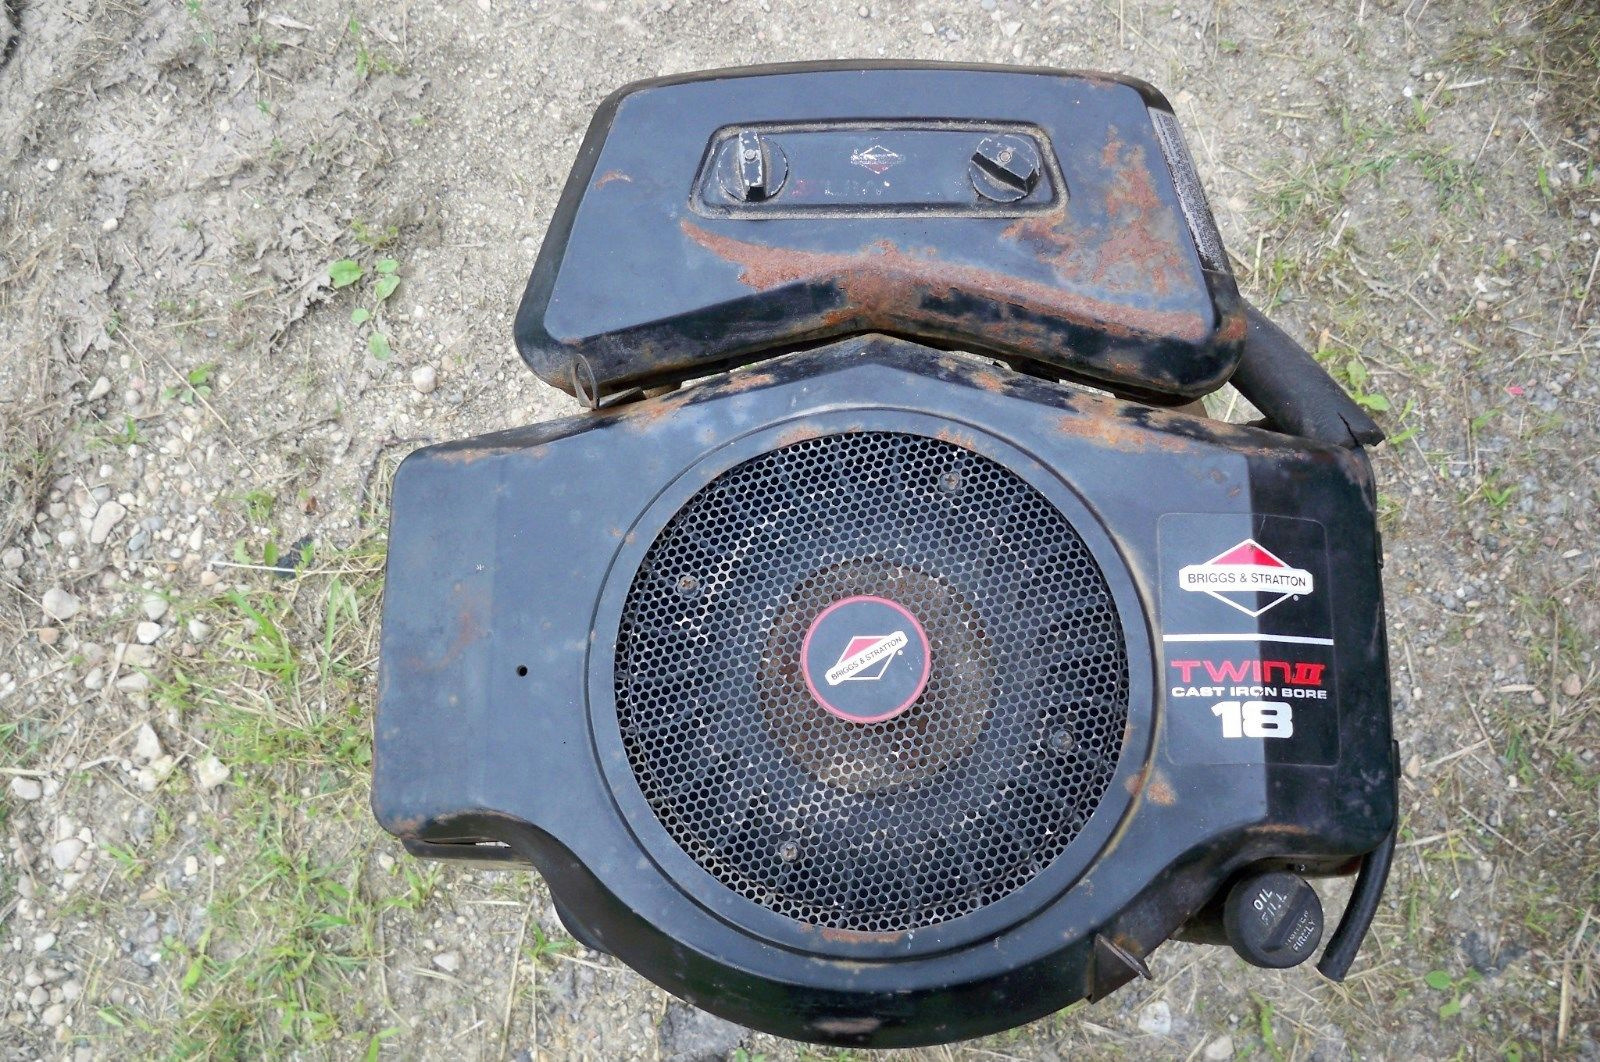 briggs and stratton 5hp outboard motor manual